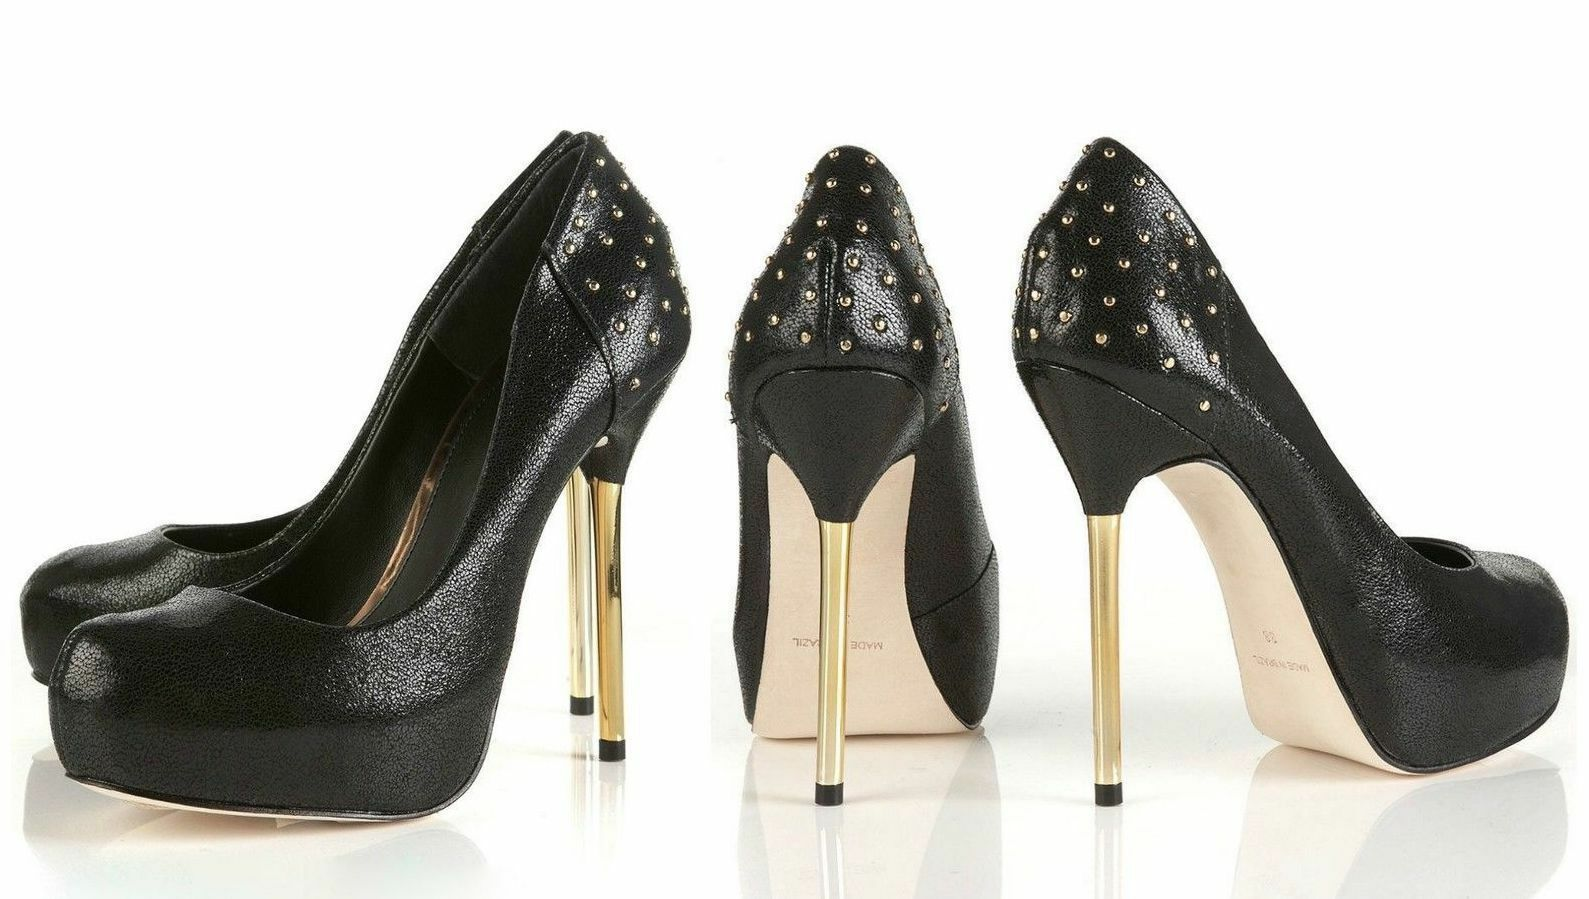 TOPSHOP PLATFORM PREMIUM BLACK LEATHER PARTY PLATFORM TOPSHOP SHOE WITH GOLD STUDS and METAL HEEL f2765f